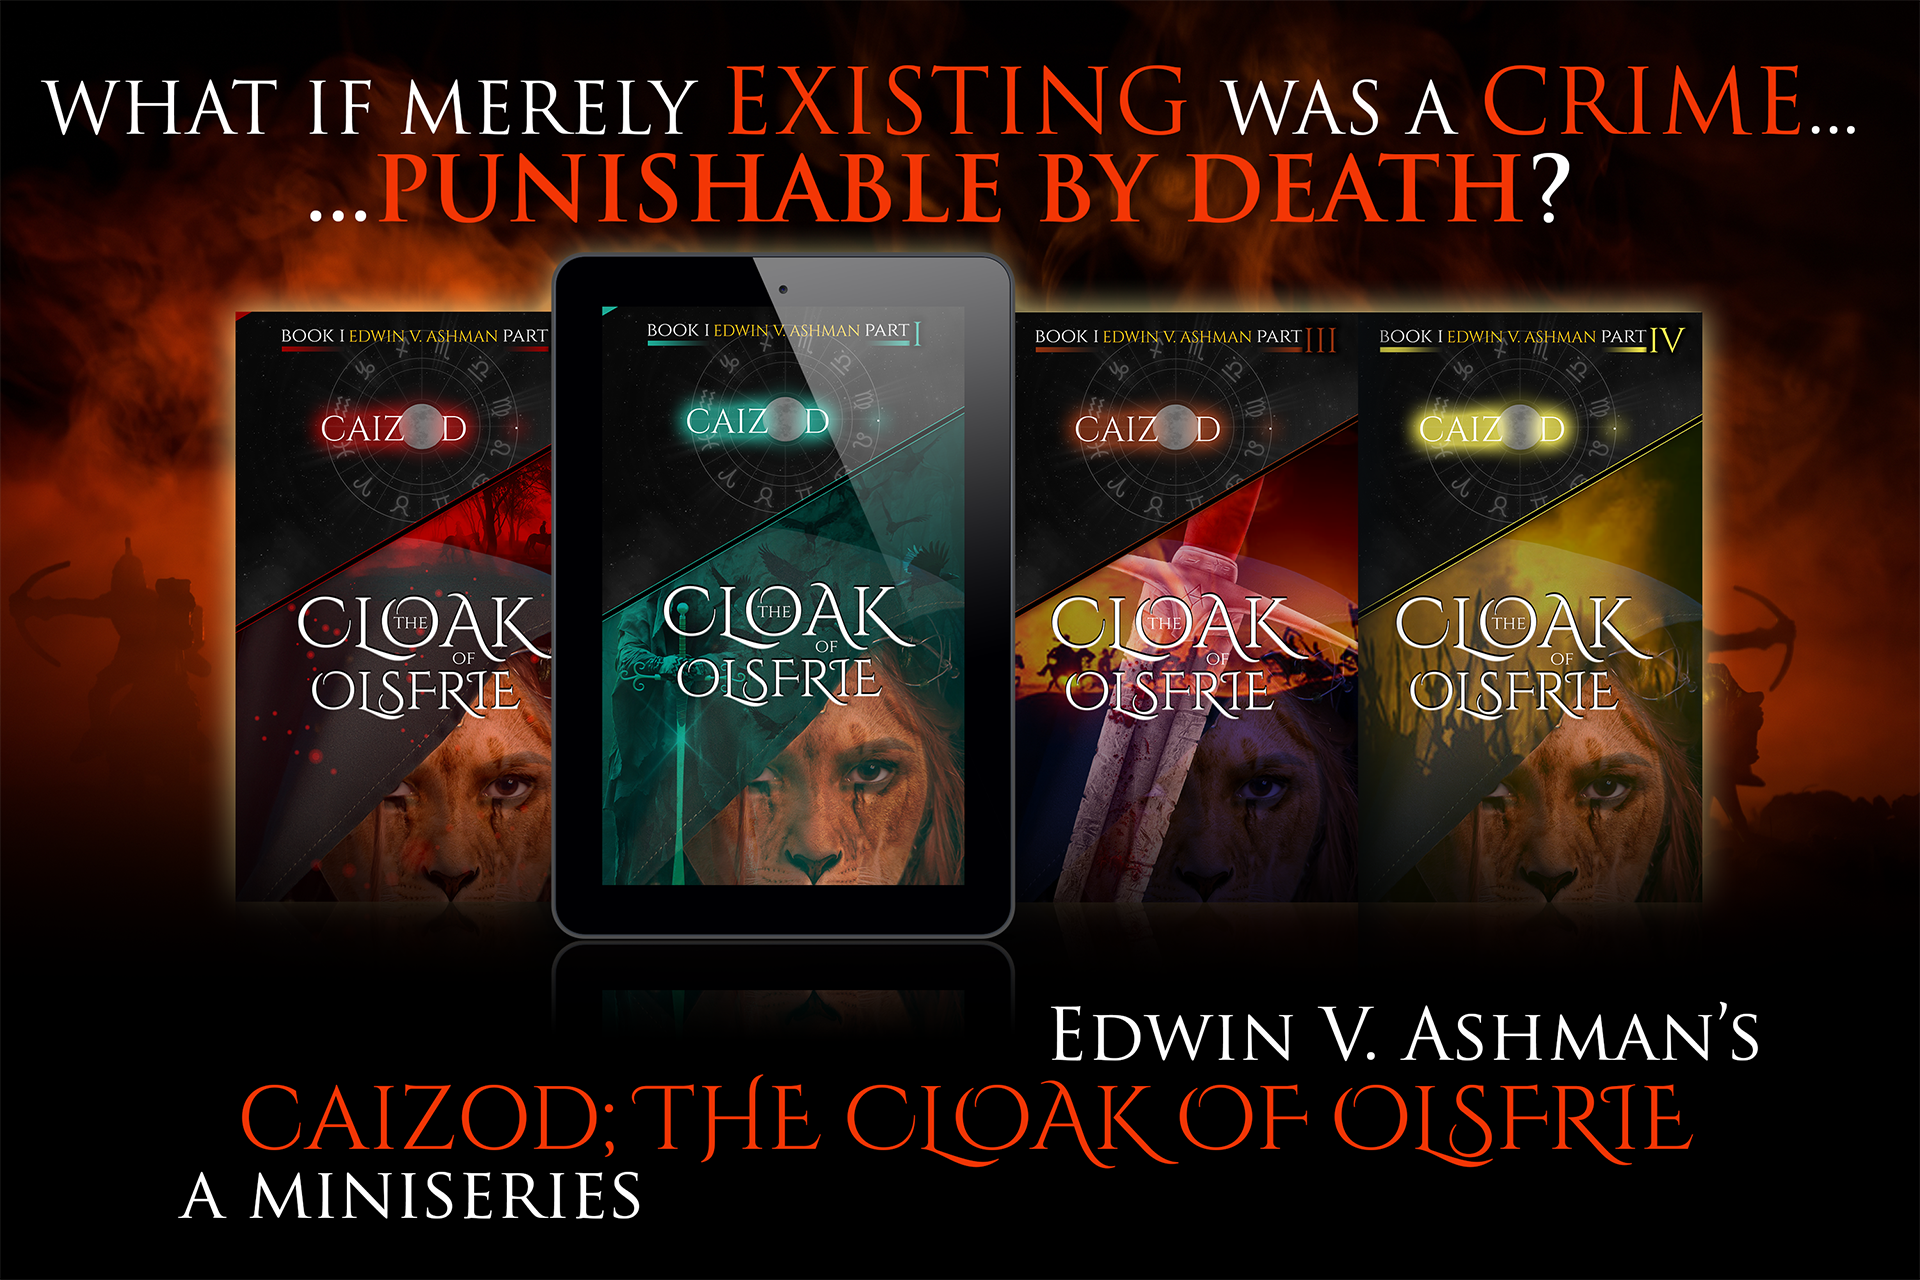 What if merely existing was a crime... Punishable by death? Caizod; The Cloak of Olsfrie by Edwin V. Ashman